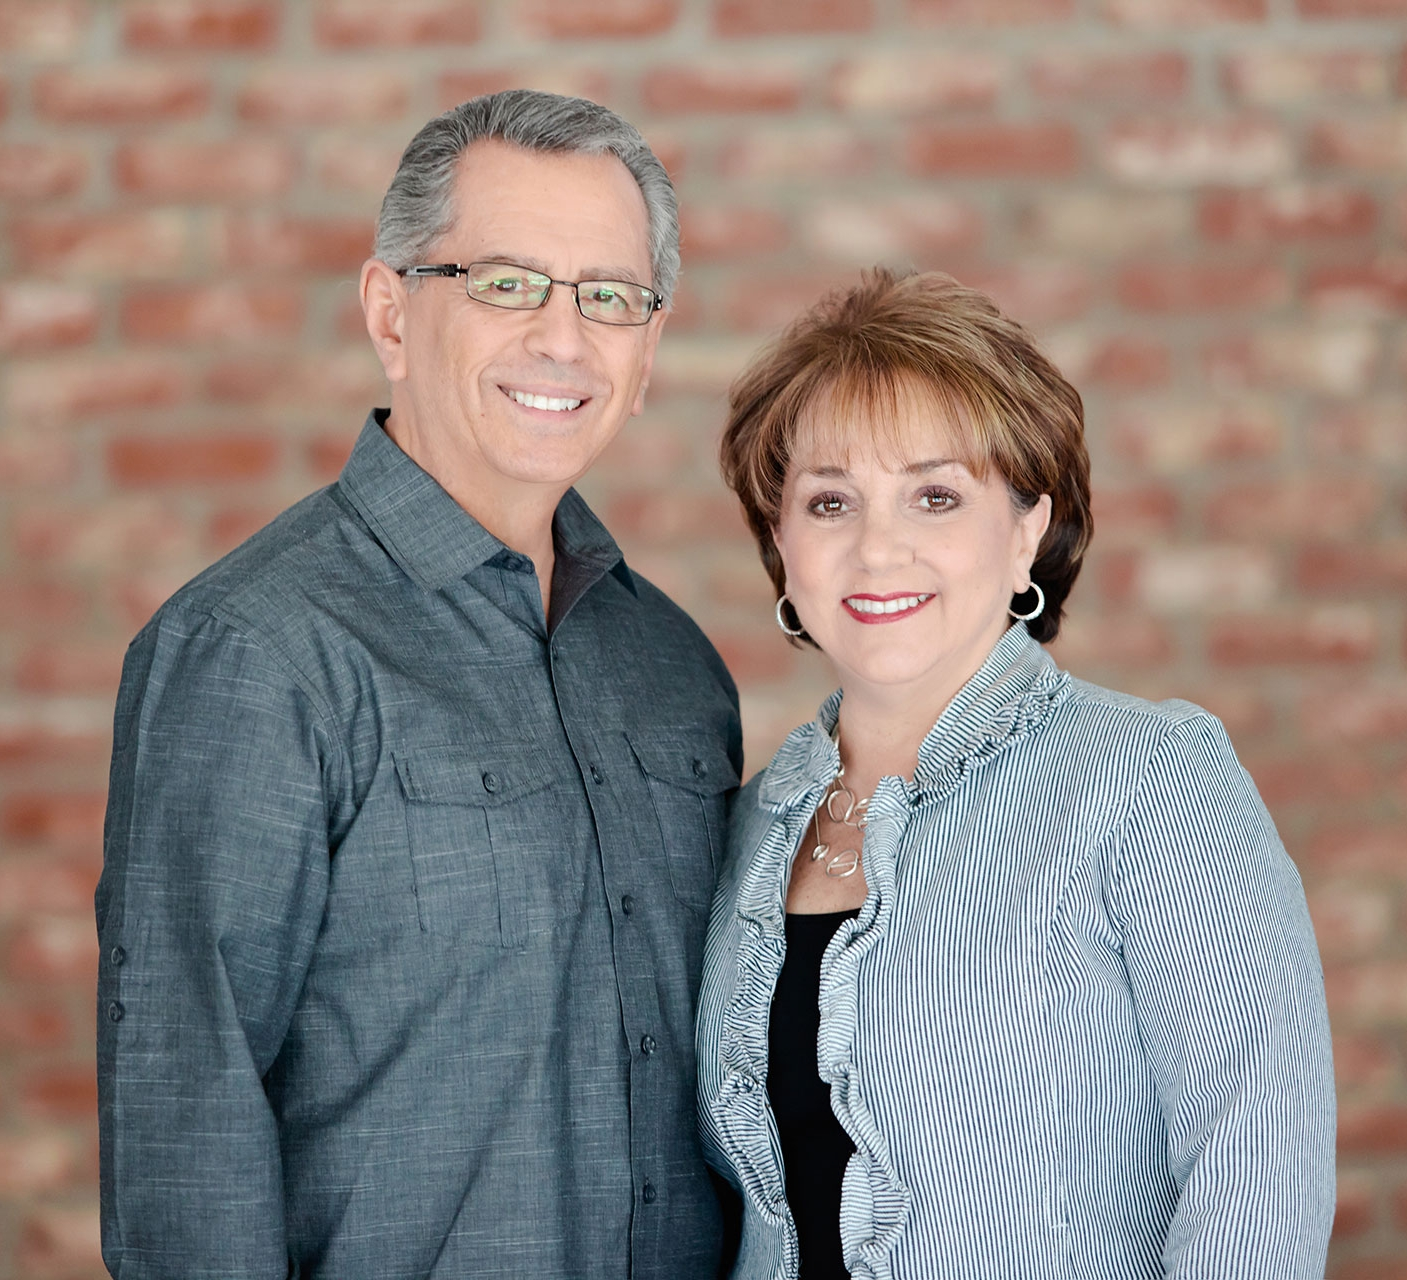 Jonathan & Verna Del Turco - Pastor Jonathan and Verna Del Turco founded International Family Church (IFC) in 1981 with a vision and heart to see people walk in the fullness of who they are in Christ and to fulfill their God-given destiny. Their vision continues to become a reality as they see people connecting with Christ, their local church and the call of God upon their lives.Jonathan is a Pastor to Pastors and Missionaries and equips and empowers ministry leaders to be courageous and simply take the next step in their God given assignment. Verna currently serves as the Executive Director of International Family Church and has been the host of the New England Women's Convention for the past 28 years.